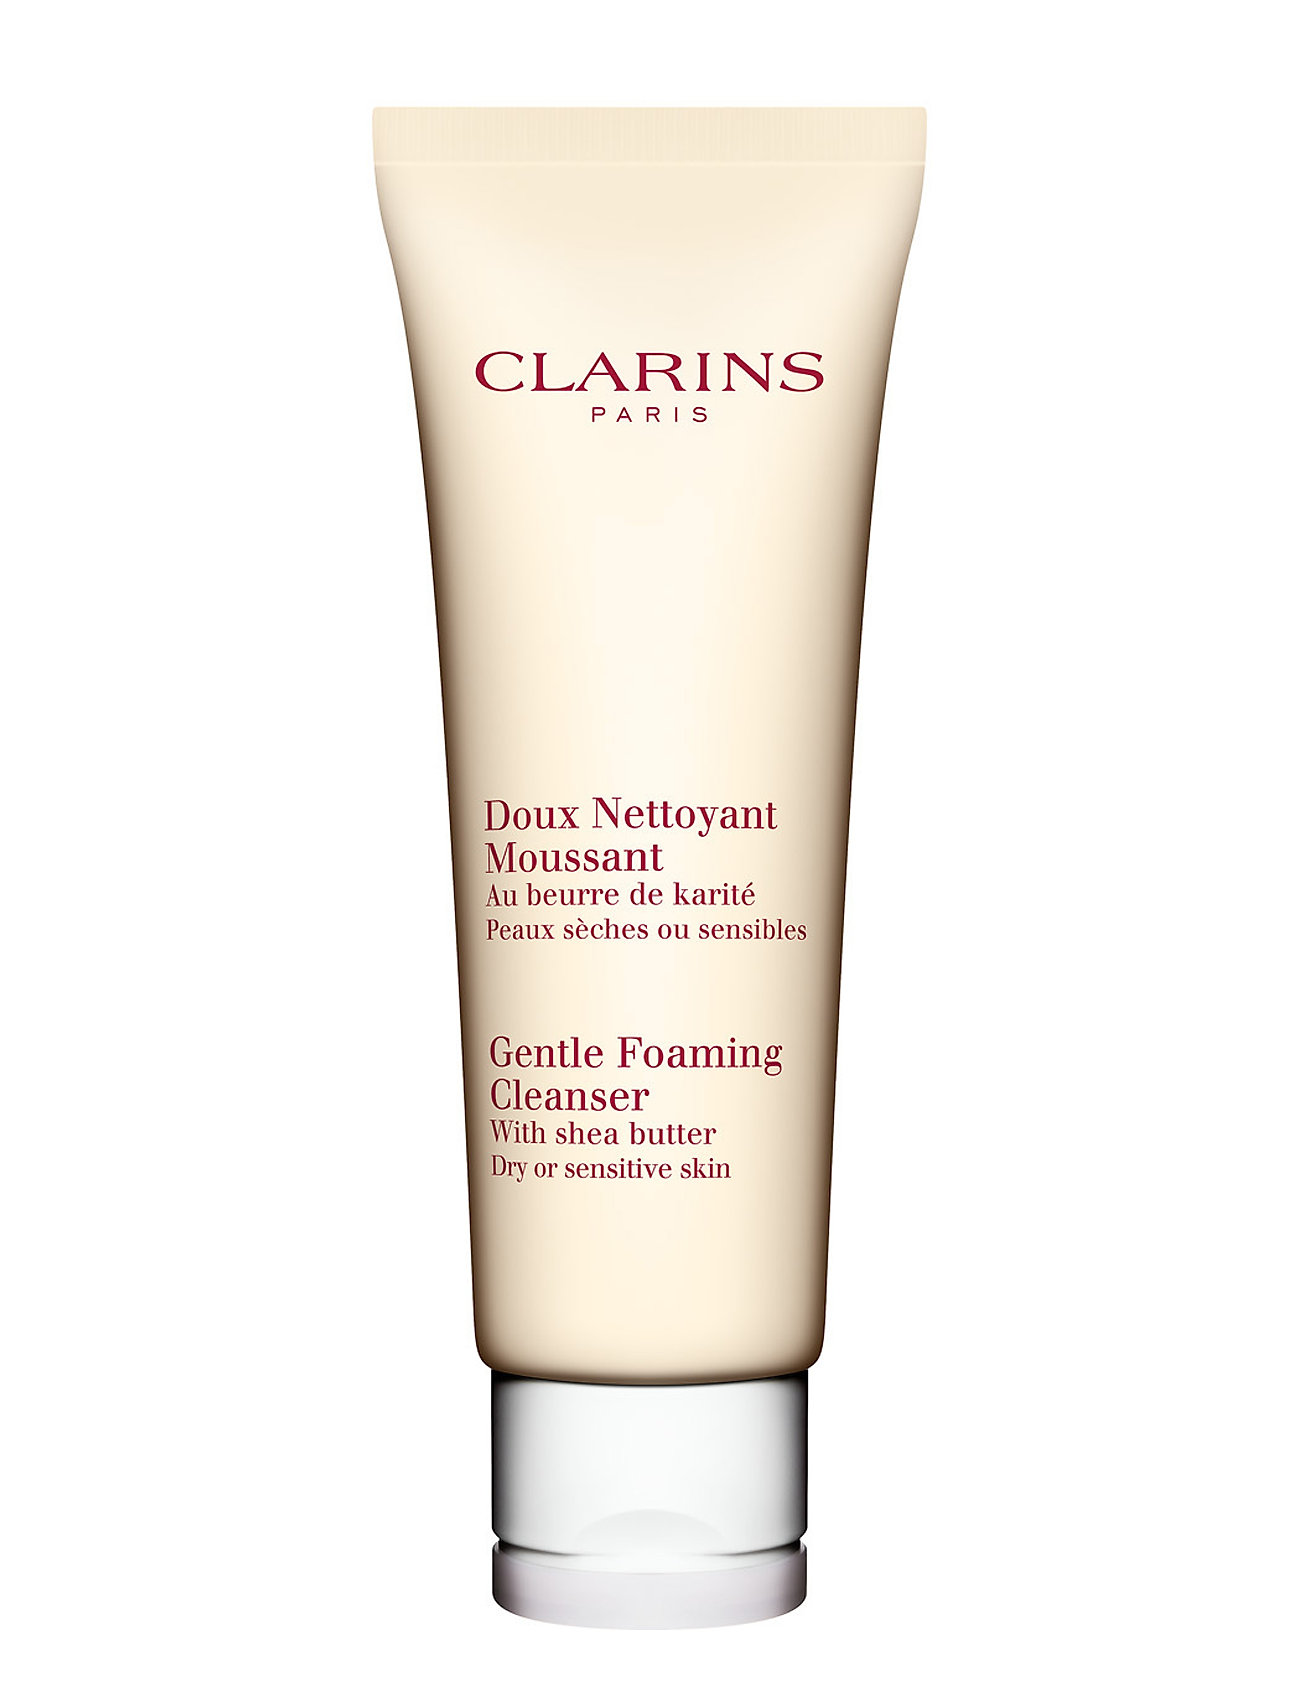 Image of Gentle Foaming Cleanser Dryor Sensitive Skin Beauty WOMEN Skin Care Face Cleansers Cleansing Gel Nude Clarins (3072753171)